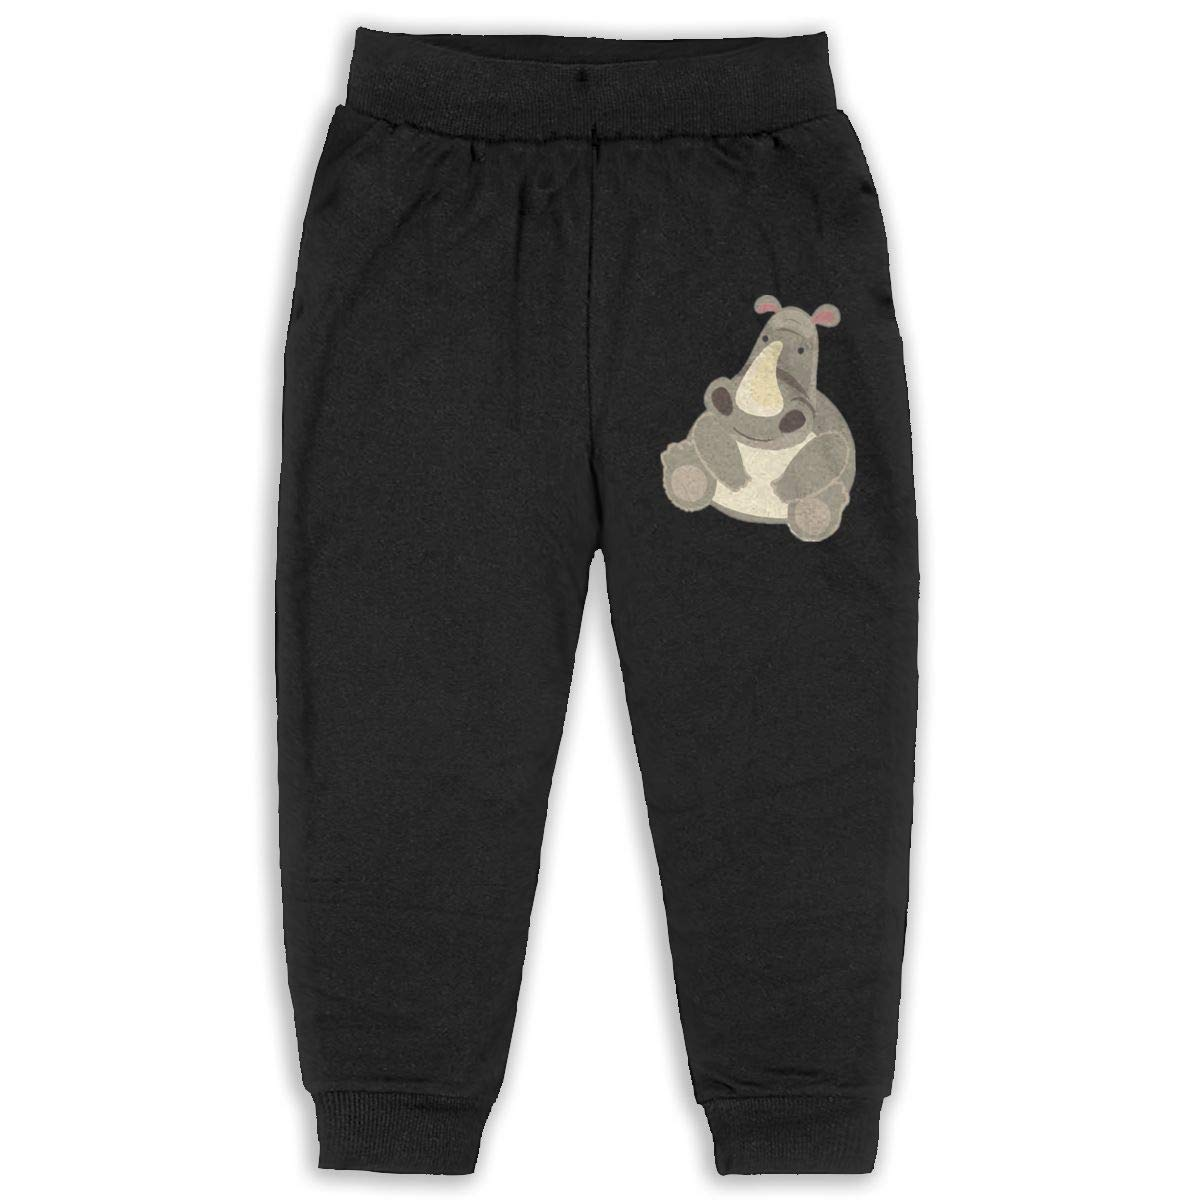 LFCLOSET Cartoon Cute Hippo Children Active Jogger Sweatpants Basic Elastic Sport Pants Black